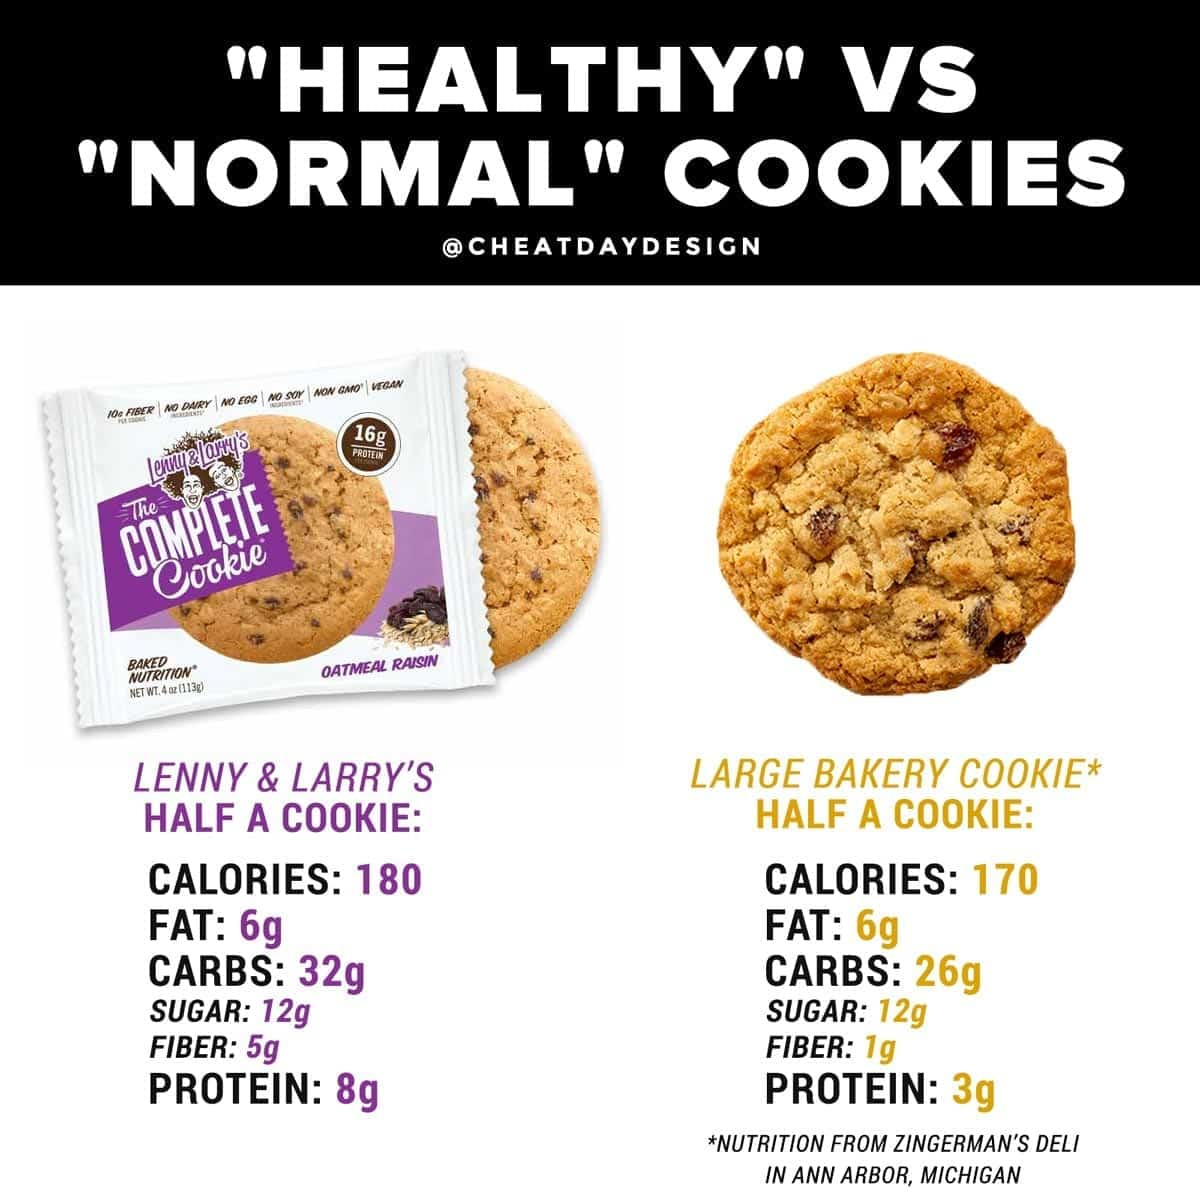 How Healthy is Lenny & Larry's?